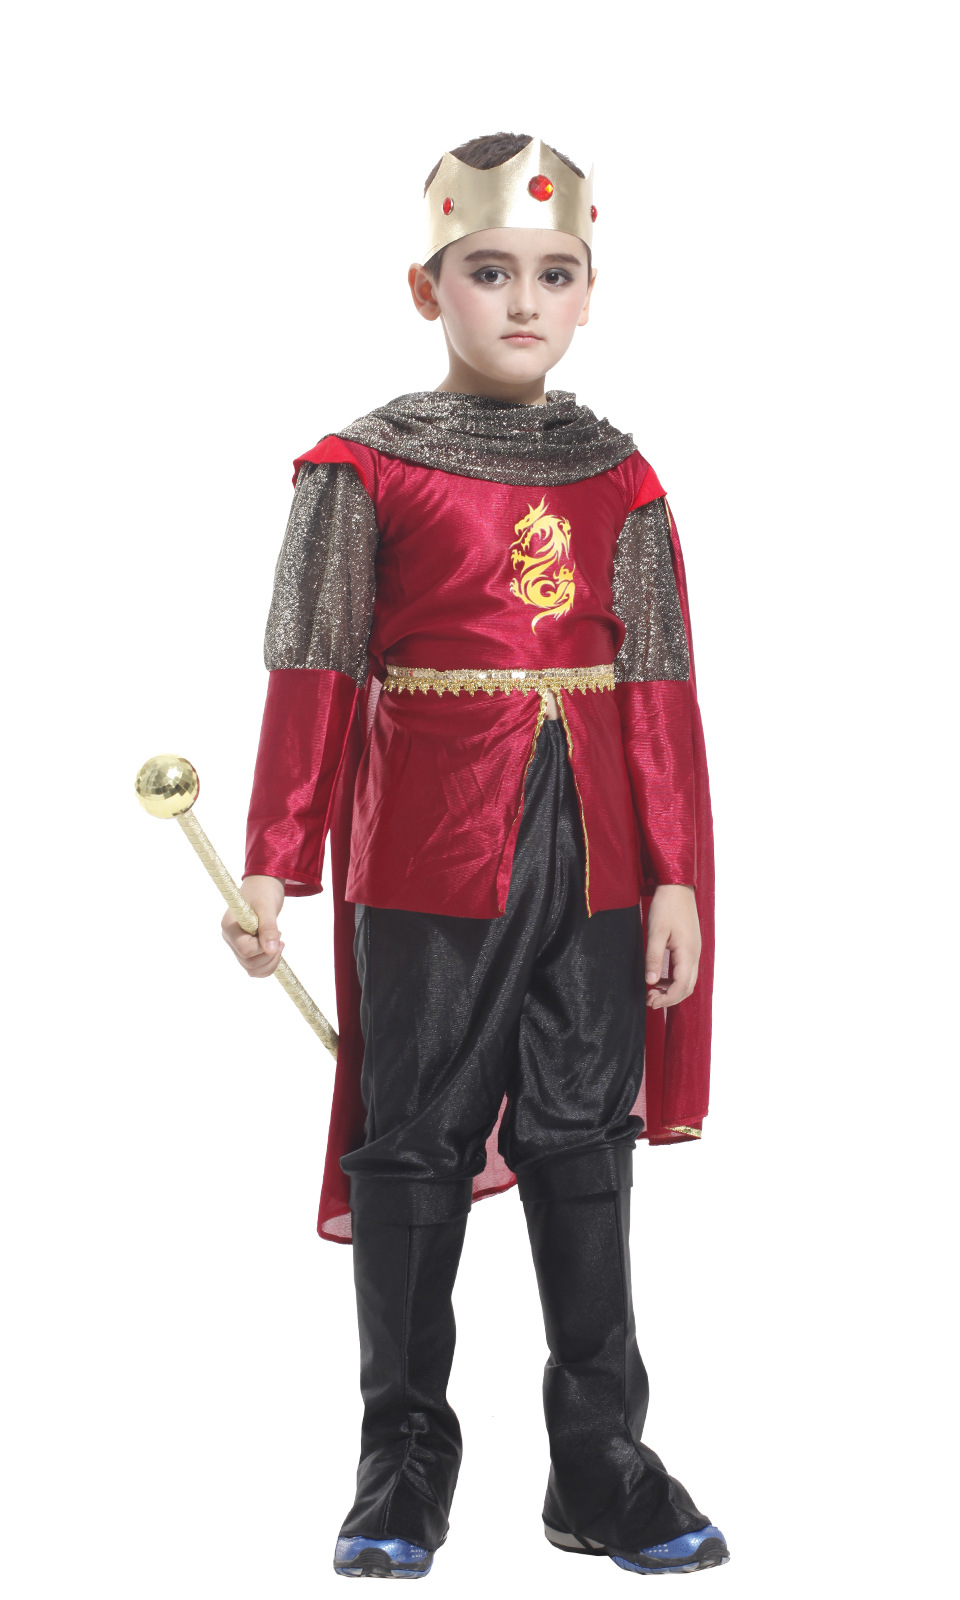 Kids King Costume Royal Robes For Boys Party Costume With Cloak Buy Kids Costume Boys Kids Costume Halloween Kids Costume Party Product On Alibaba Com